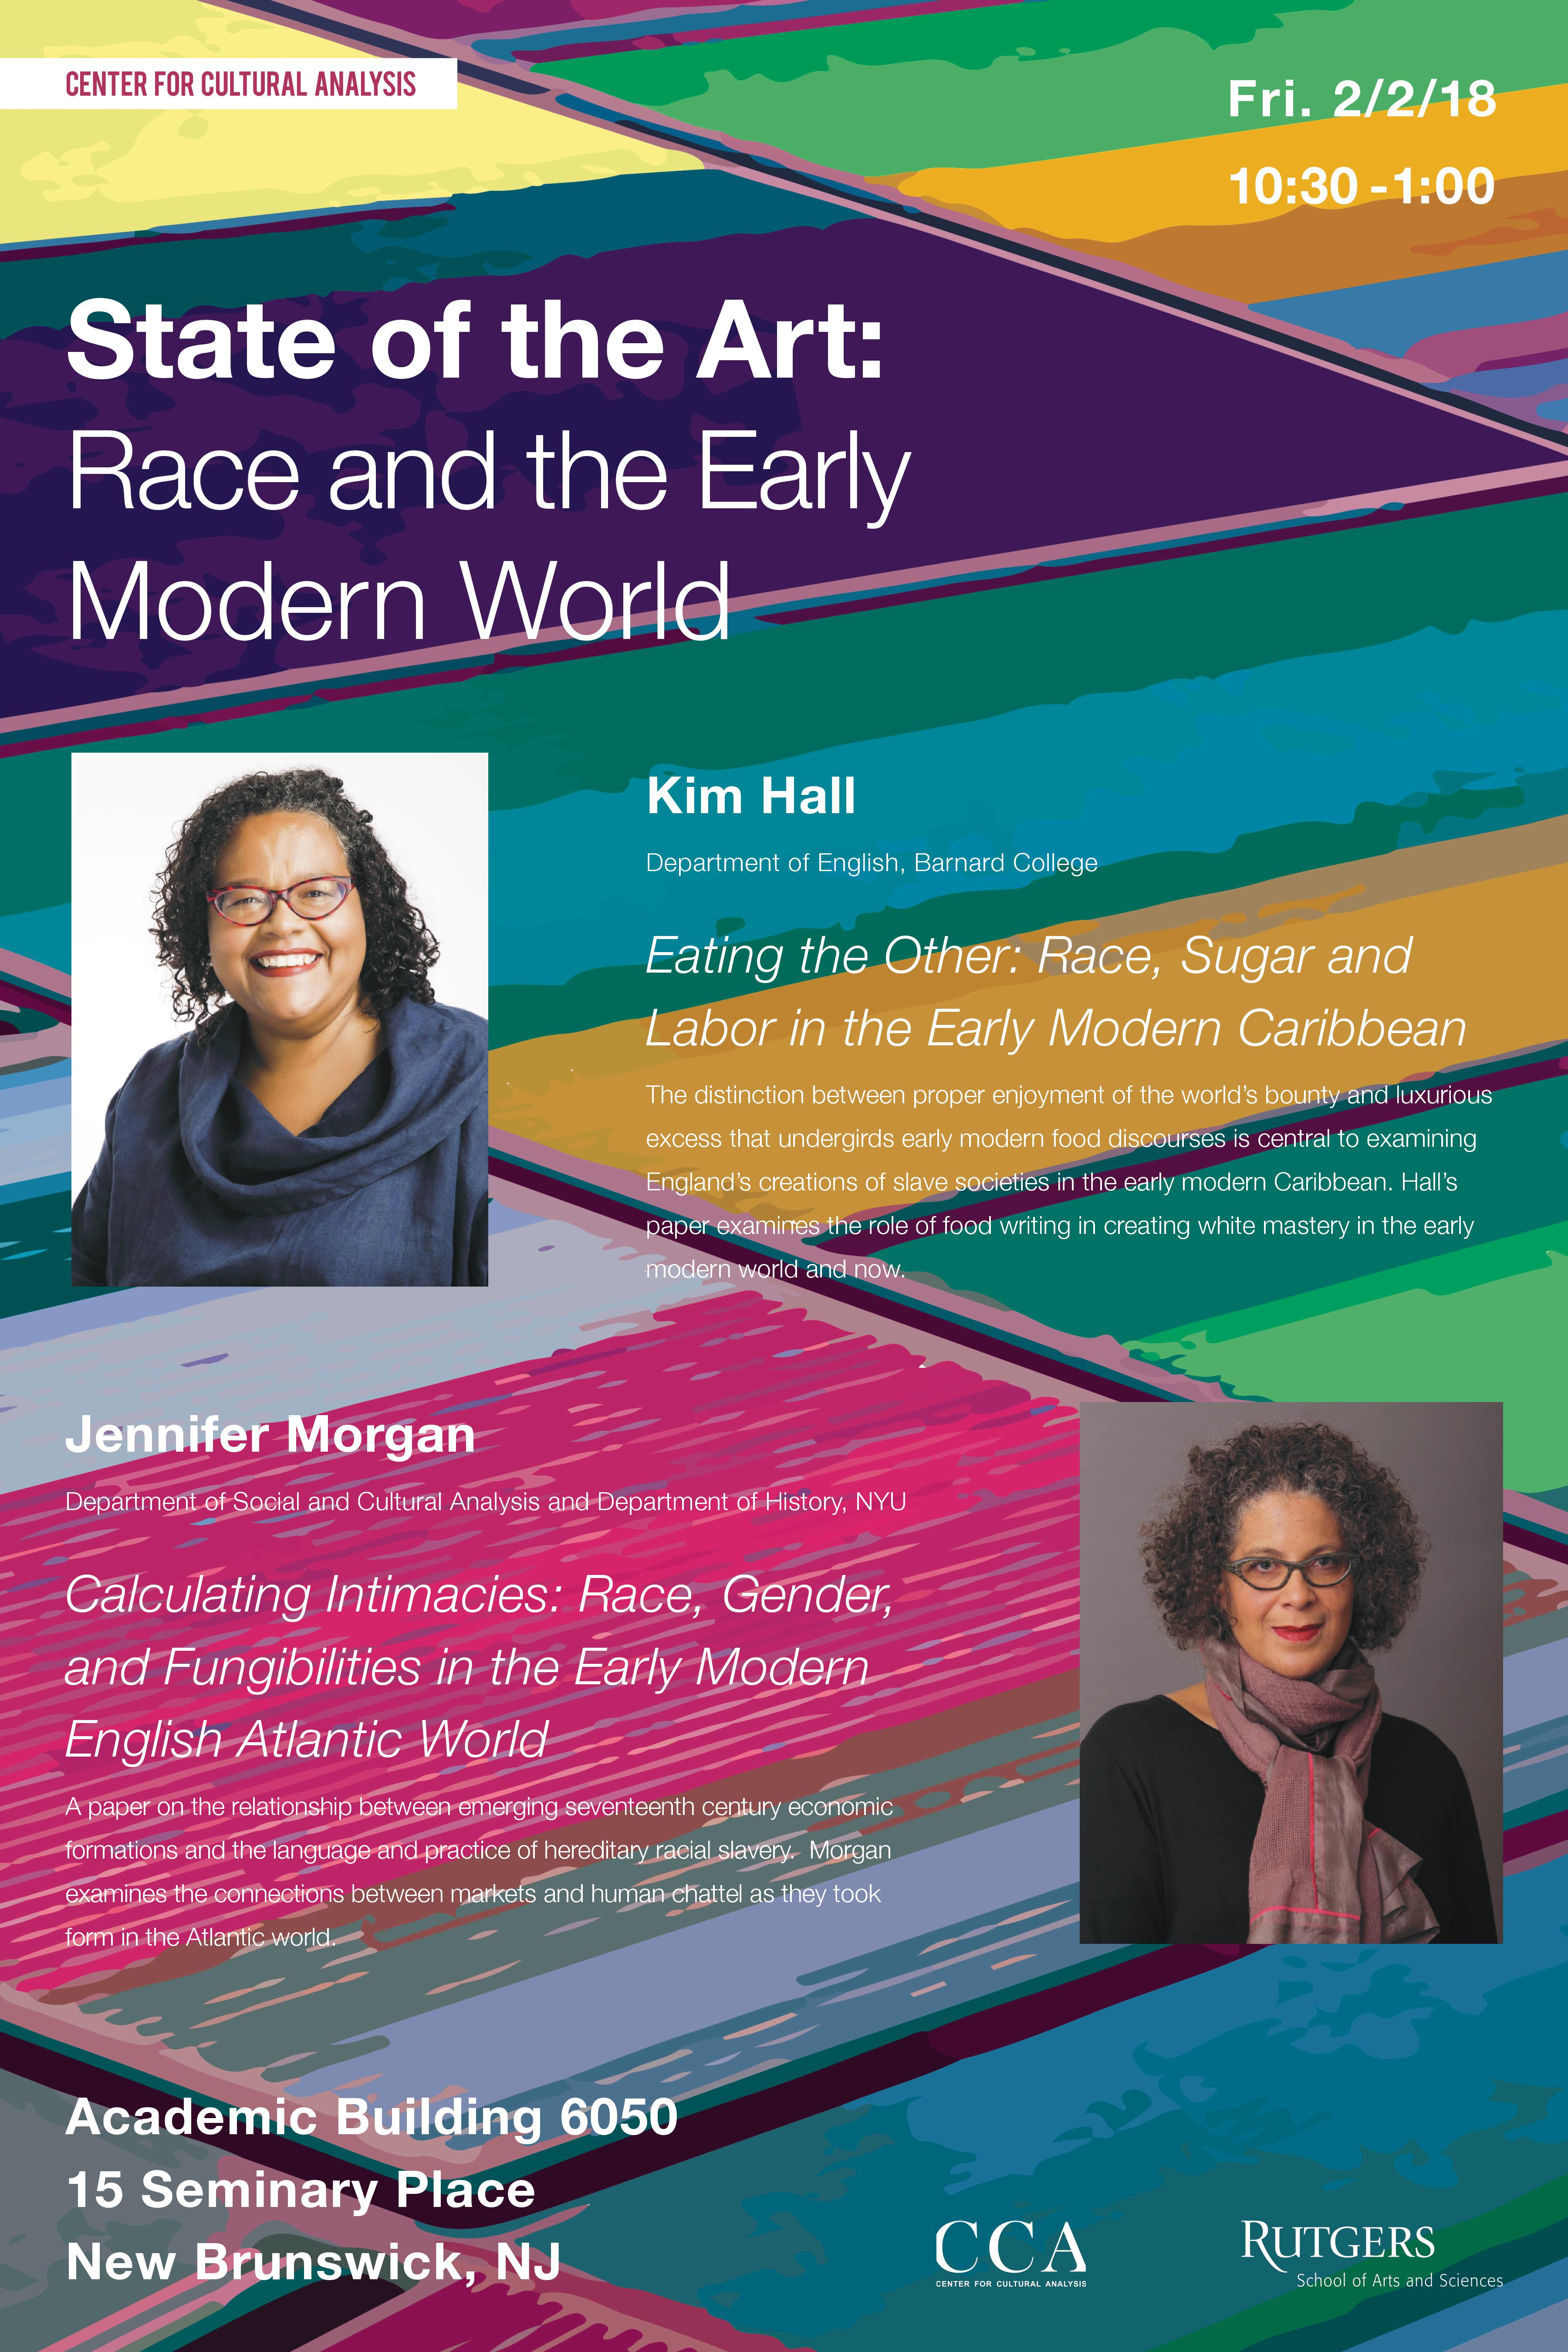 Race and the Early Modern World Feb. 2, 10:30am-1:00pm